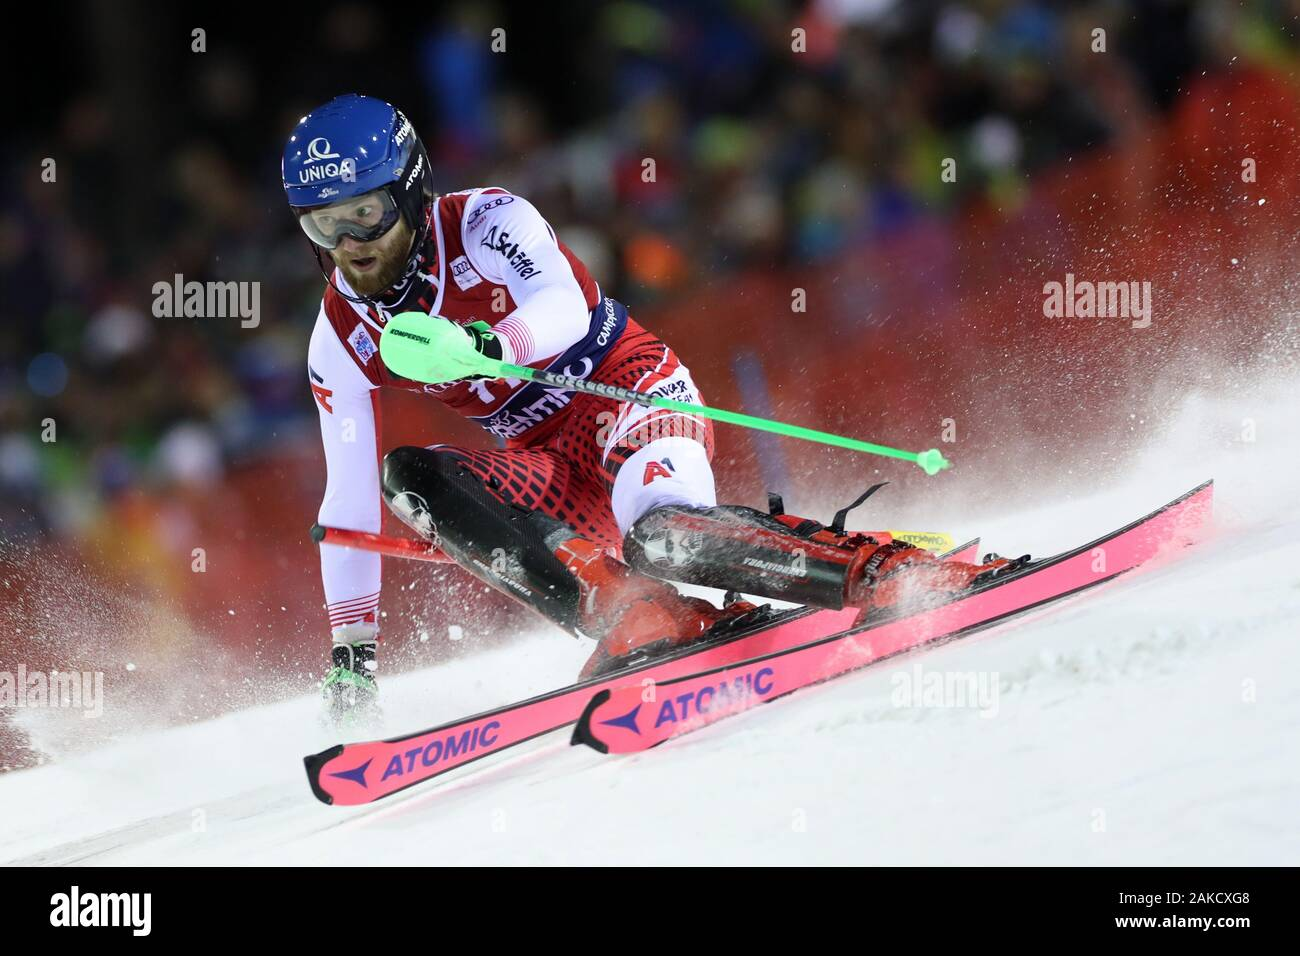 Madonna di Campiglio, Italy. 8th Jan 2020. FIS Alpine Ski World Cup Men's Night Slalom in Madonna di Campiglio, Italy on January 8, 2020, Marco Schwarz (AUT) - Editorial Use Credit: Action Plus Sports Images/Alamy Live News Stock Photo